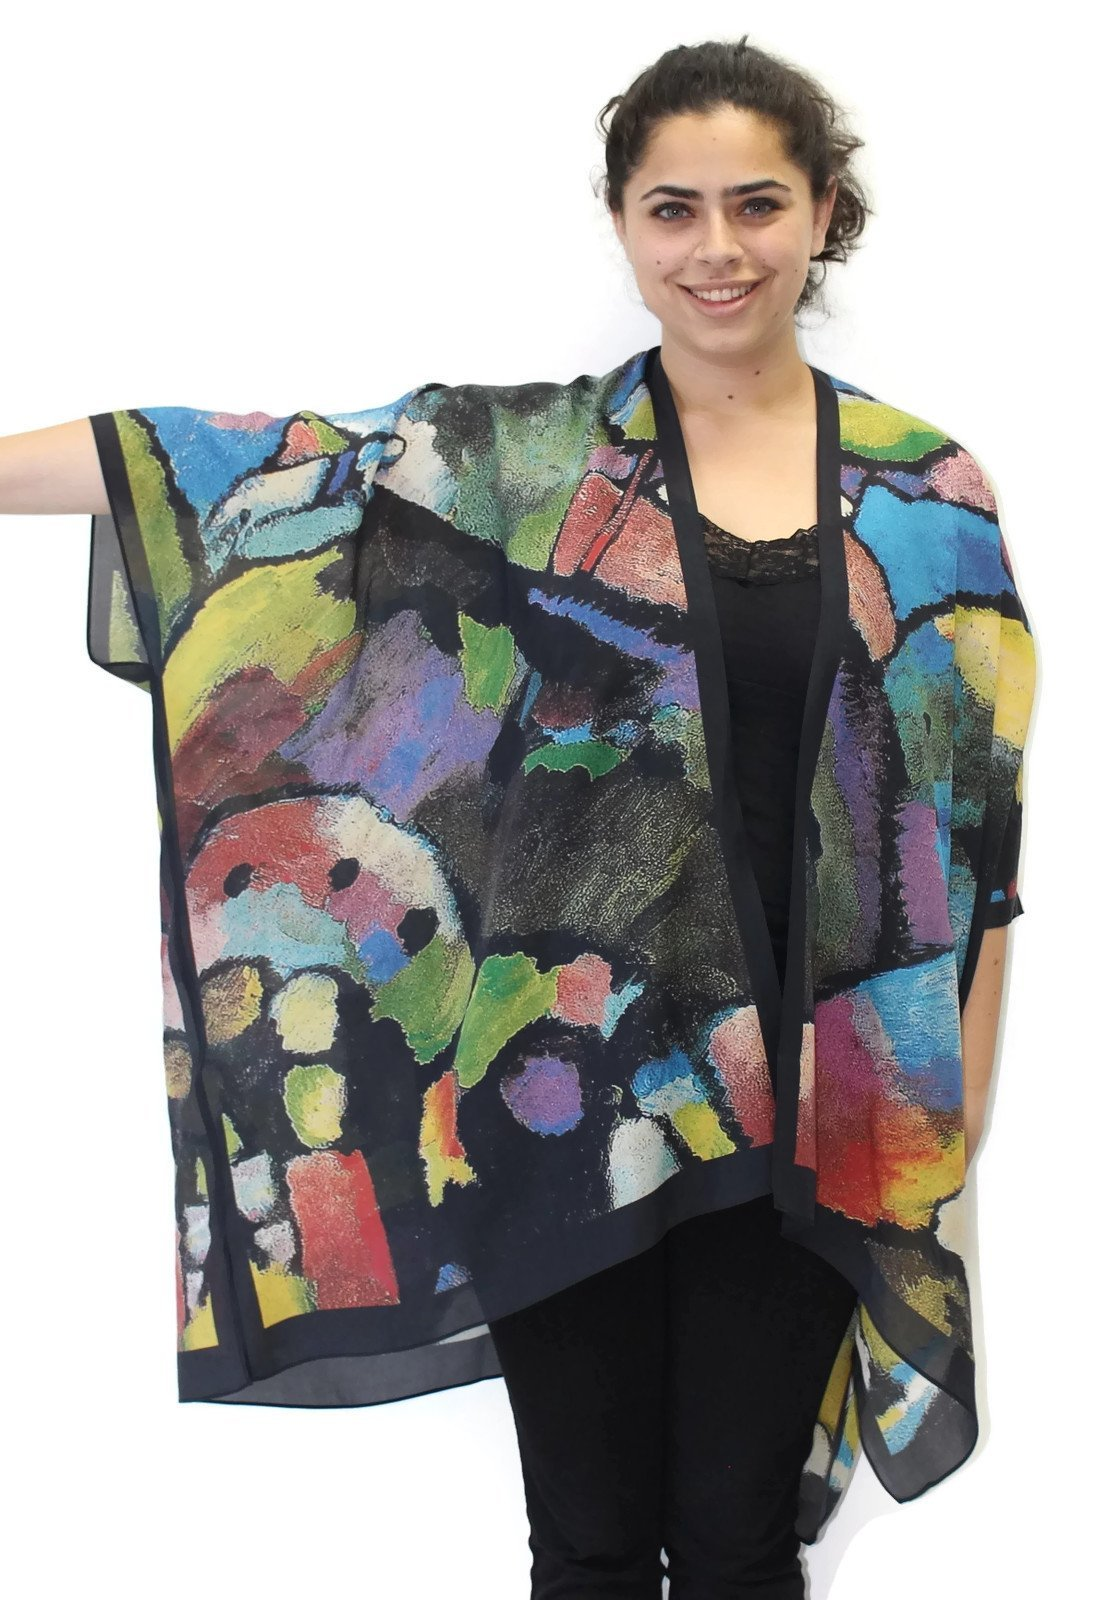 Women's Evening Jewels Silk Long Kimono Jacket Oversized One Size Plus by Cocoon House